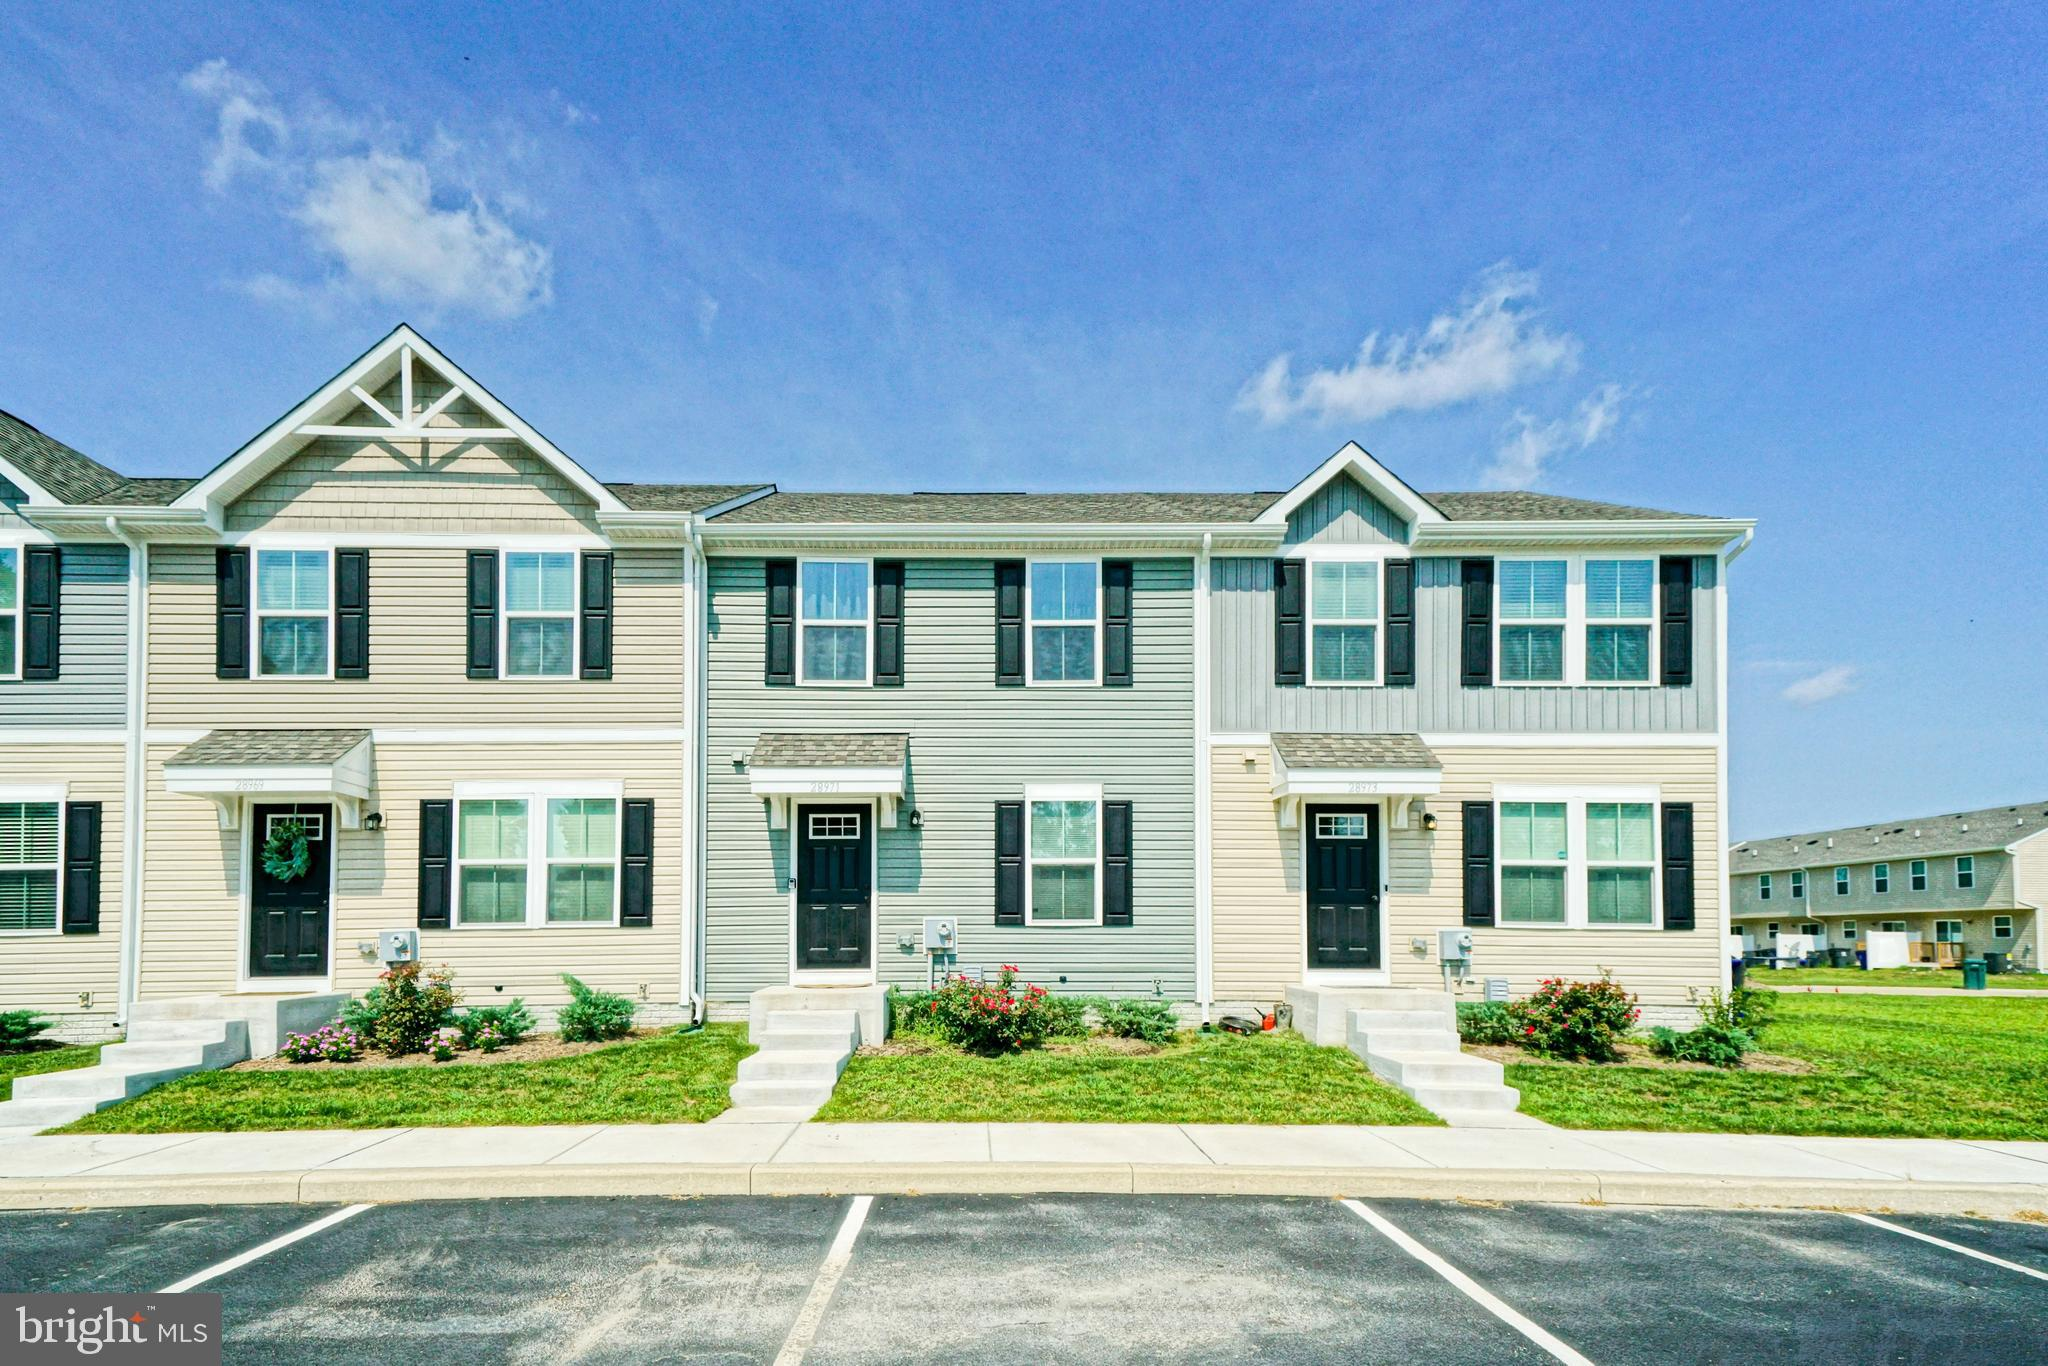 WHY WAIT TO BUILD? Enjoy this practically brand new, recently built, three-bedroom, 2.5 bath townhom